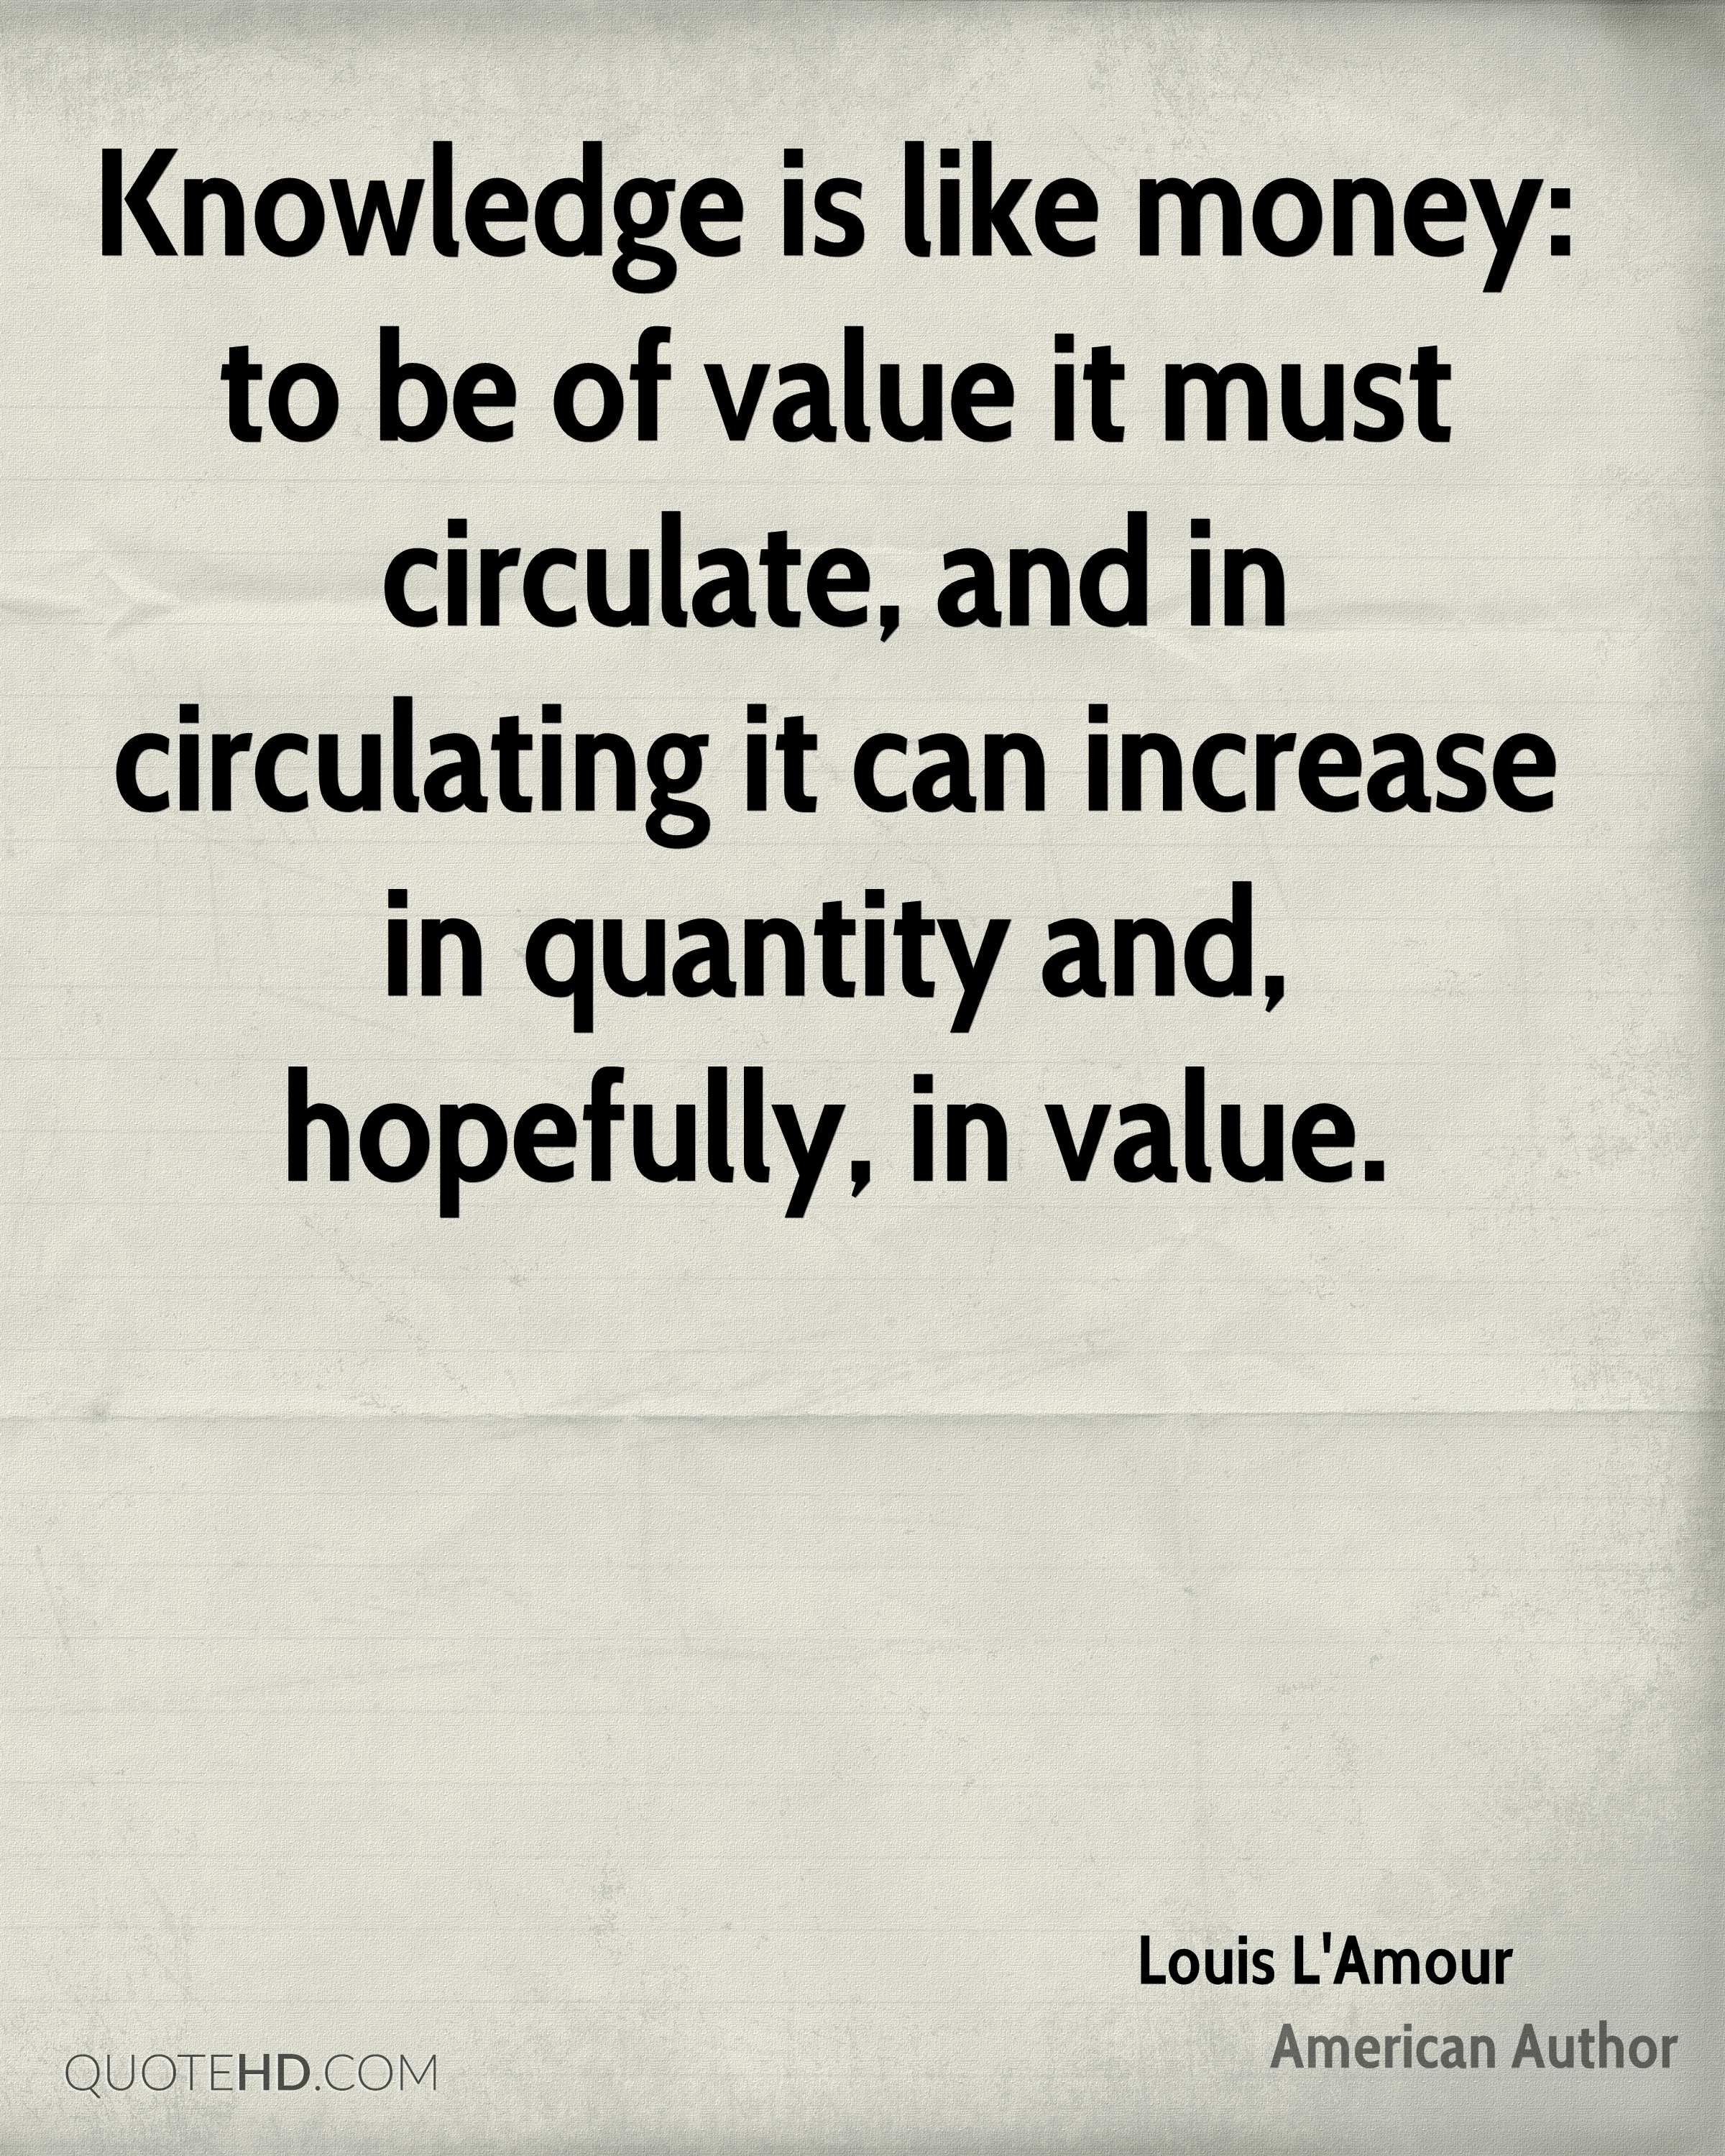 Knowledge is like money: to be of value it must circulate, and in circulating it can increase in quantity and, hopefully, in value.